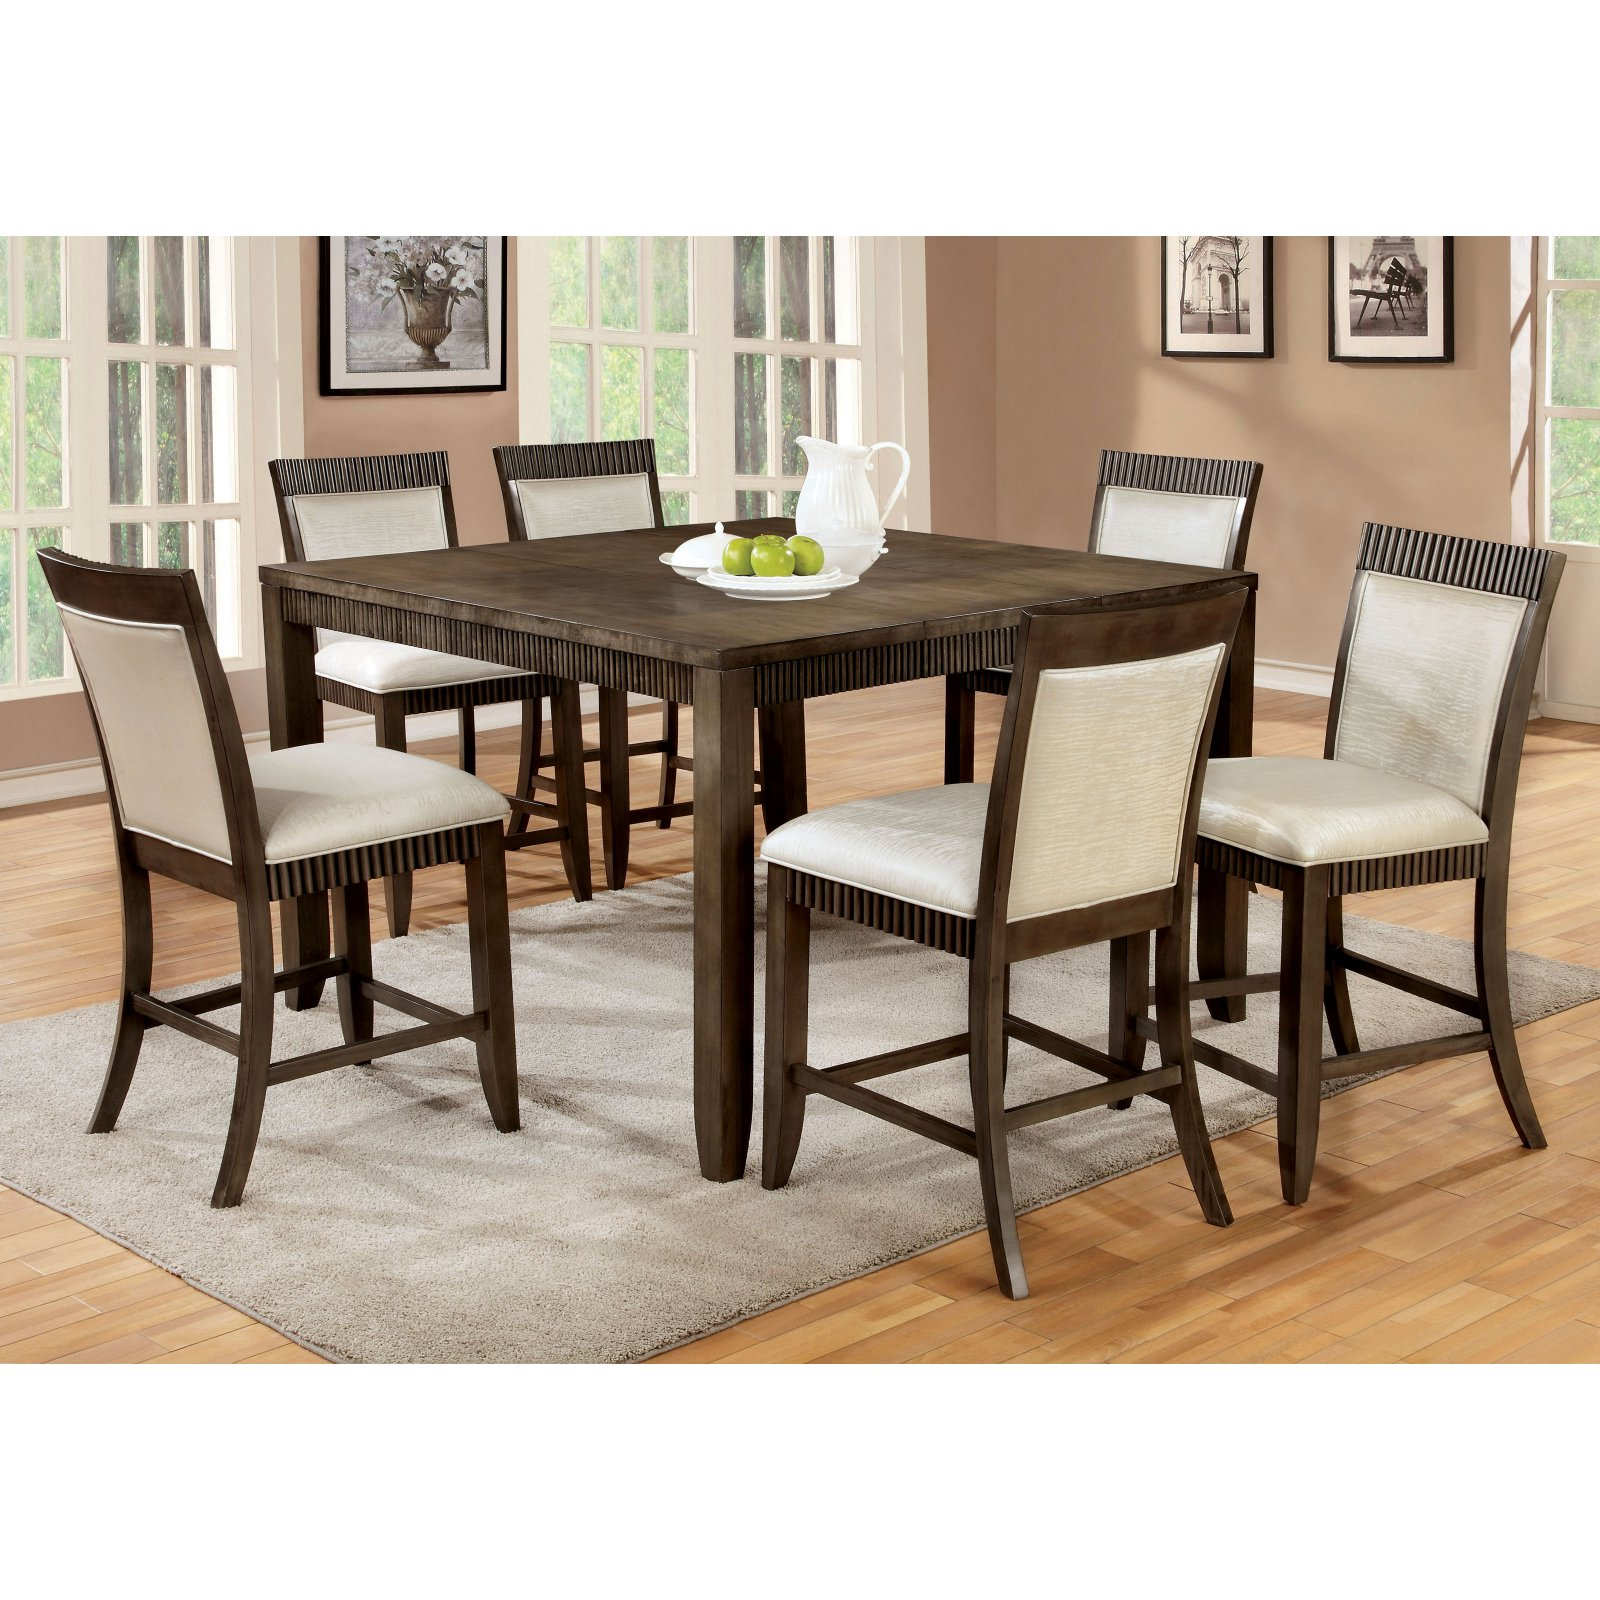 Furniture of America Midkiff Transitional Counter Height Wood Dining Table